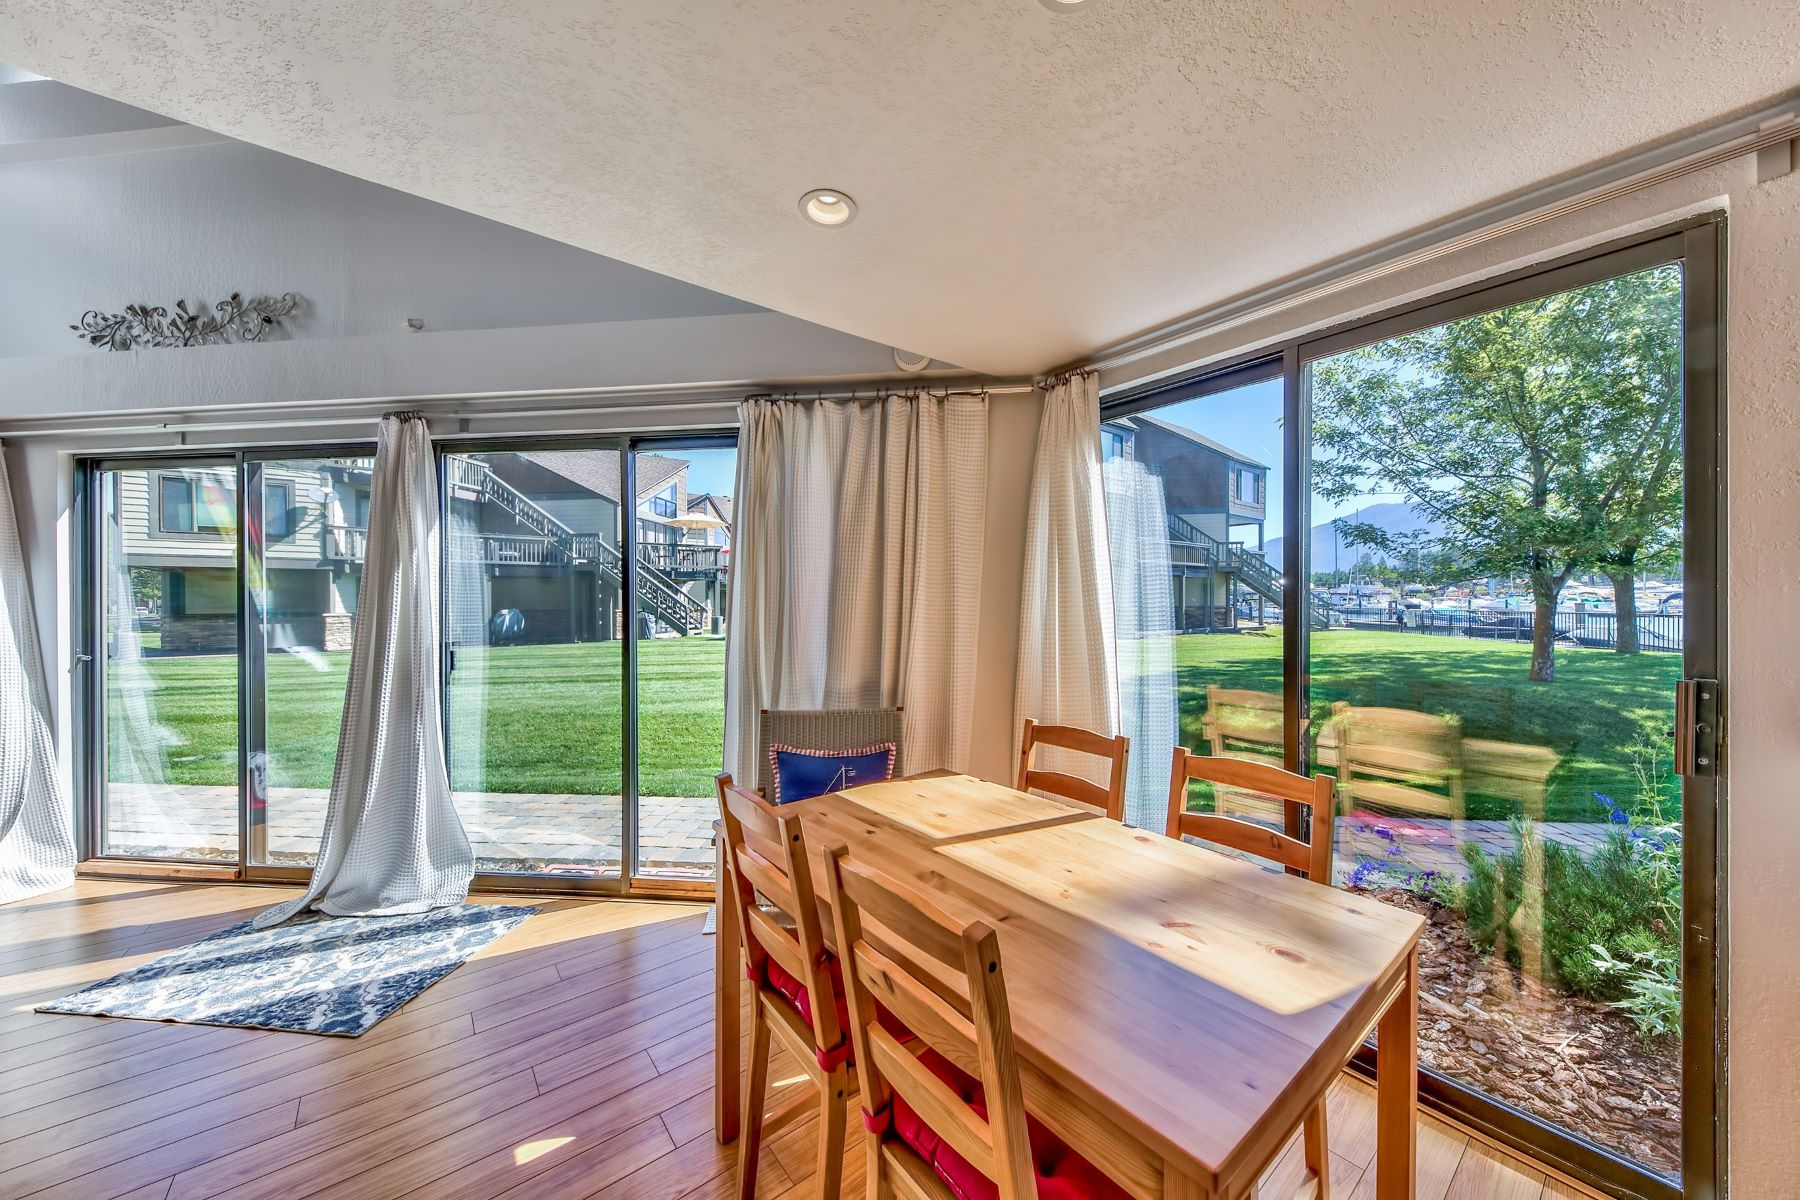 Additional photo for property listing at 497 Tahoe Keys Blvd #41, South Lake Tahoe, CA 96150 497 Tahoe Keys Blvd #41 South Lake Tahoe, California 96150 Estados Unidos